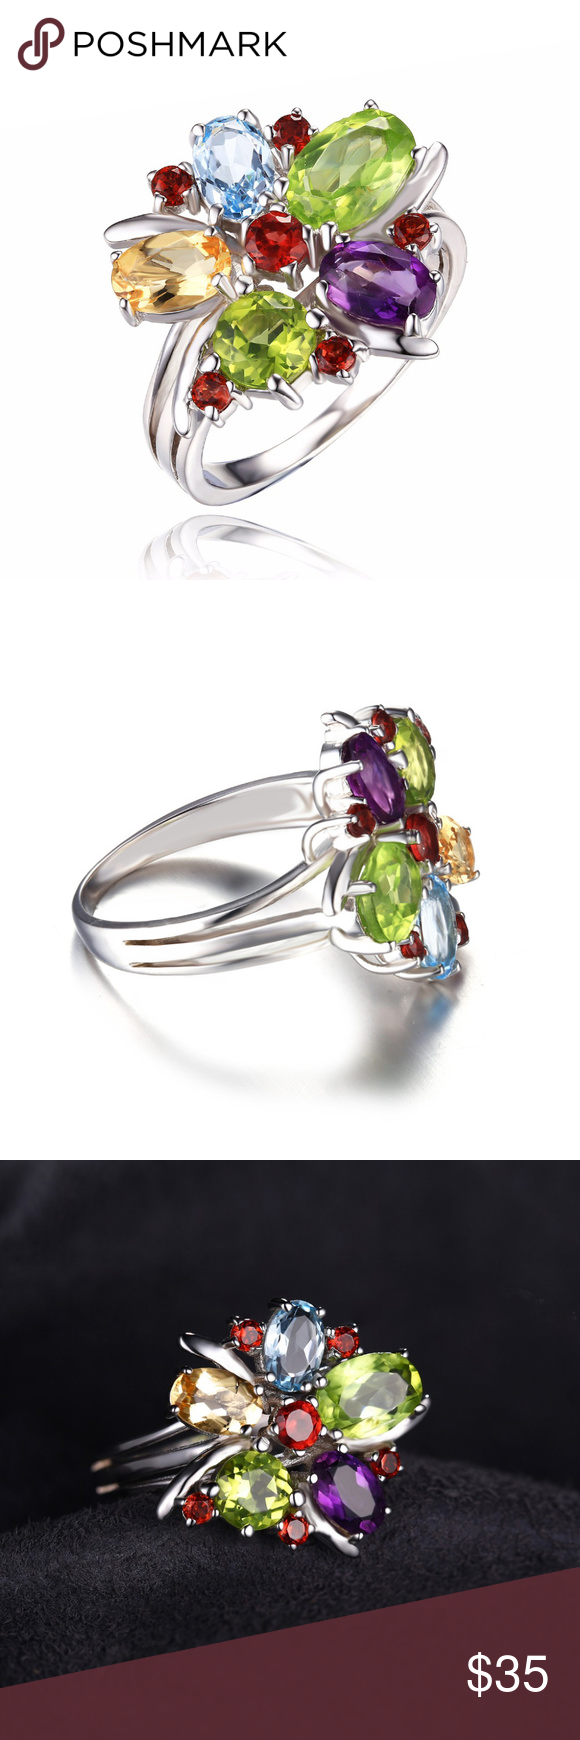 Amethyst Gemstone 925 Sterling Silver Ring Silver Jewelry Garnet Unique Ring Natural Peridot Citrine Flower Design Ring